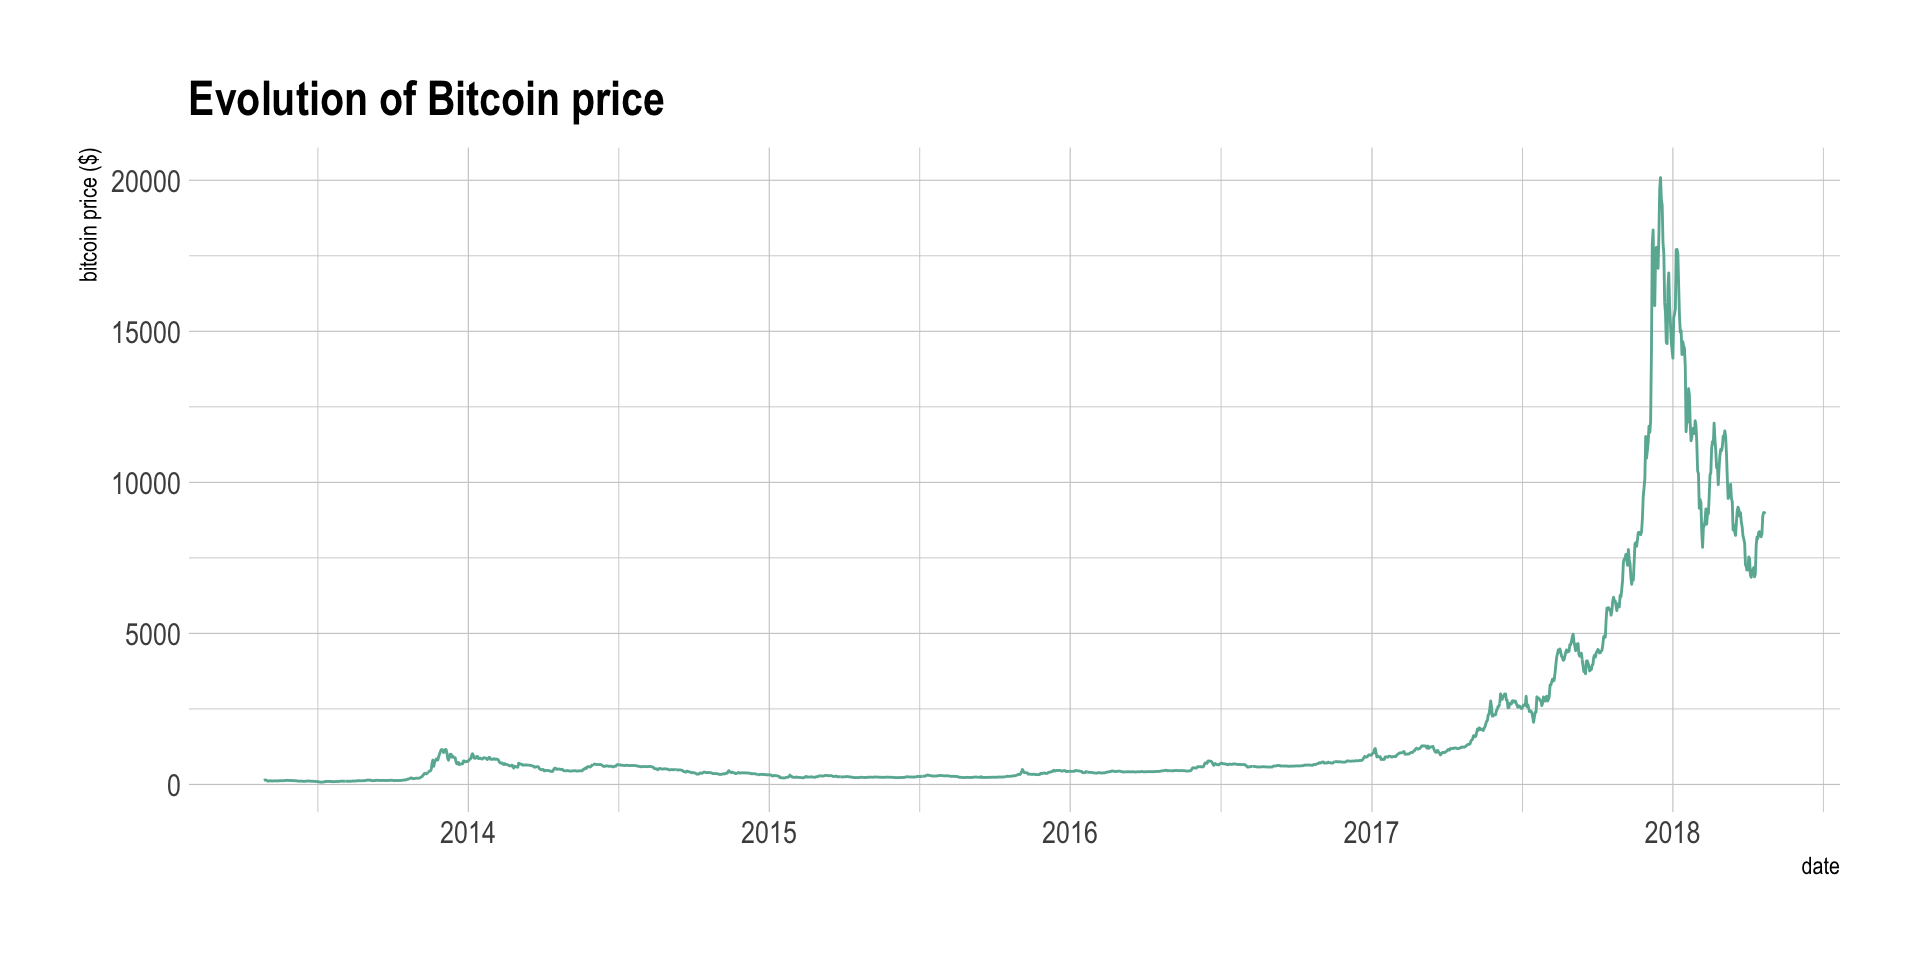 A simple line graph showing how bitcoin prices have evolved between 2014 and 2018